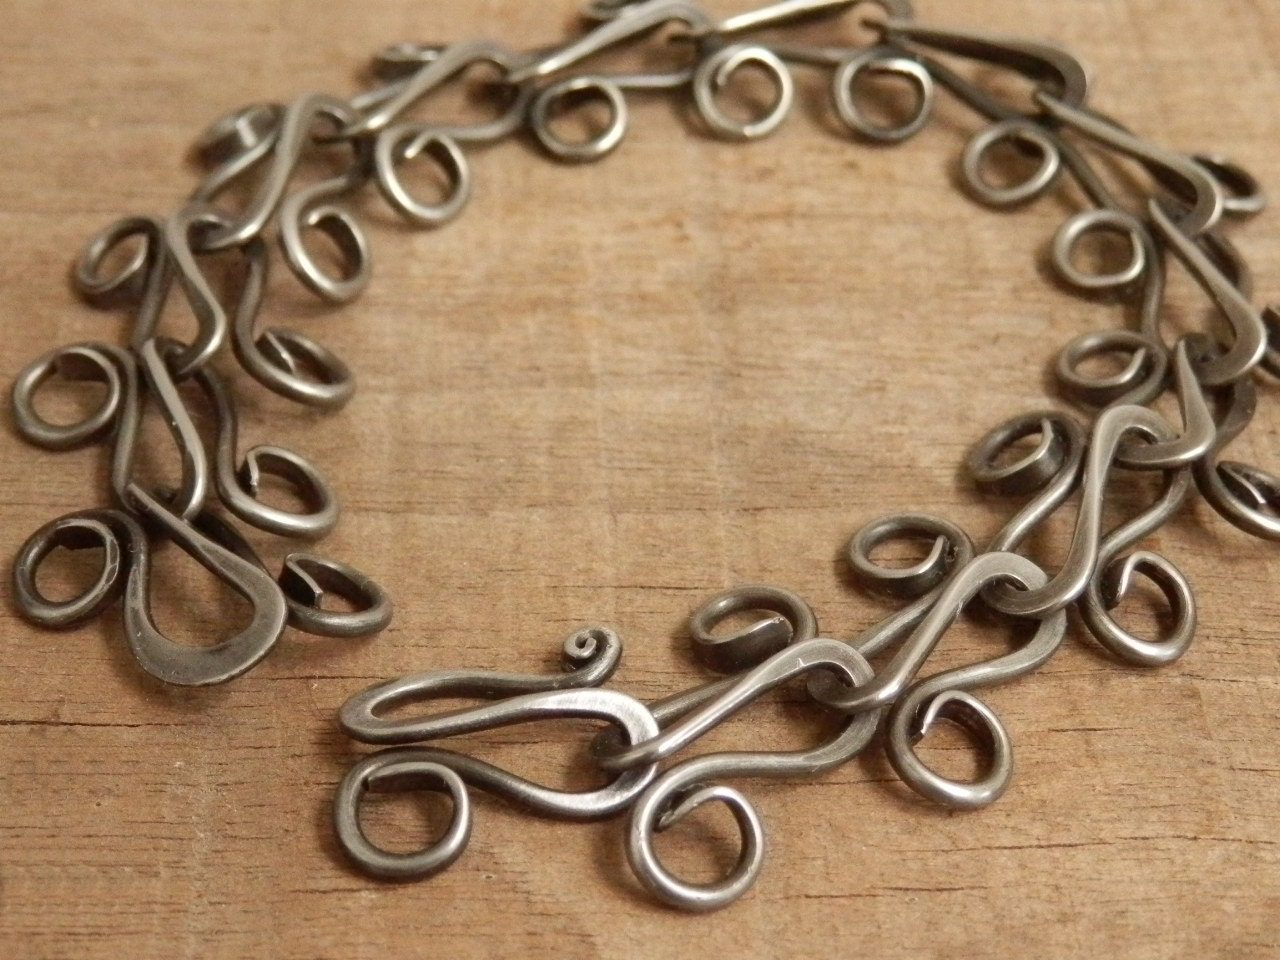 Forged Link Chains : Hand made chain bracelet forged steel jewelry by